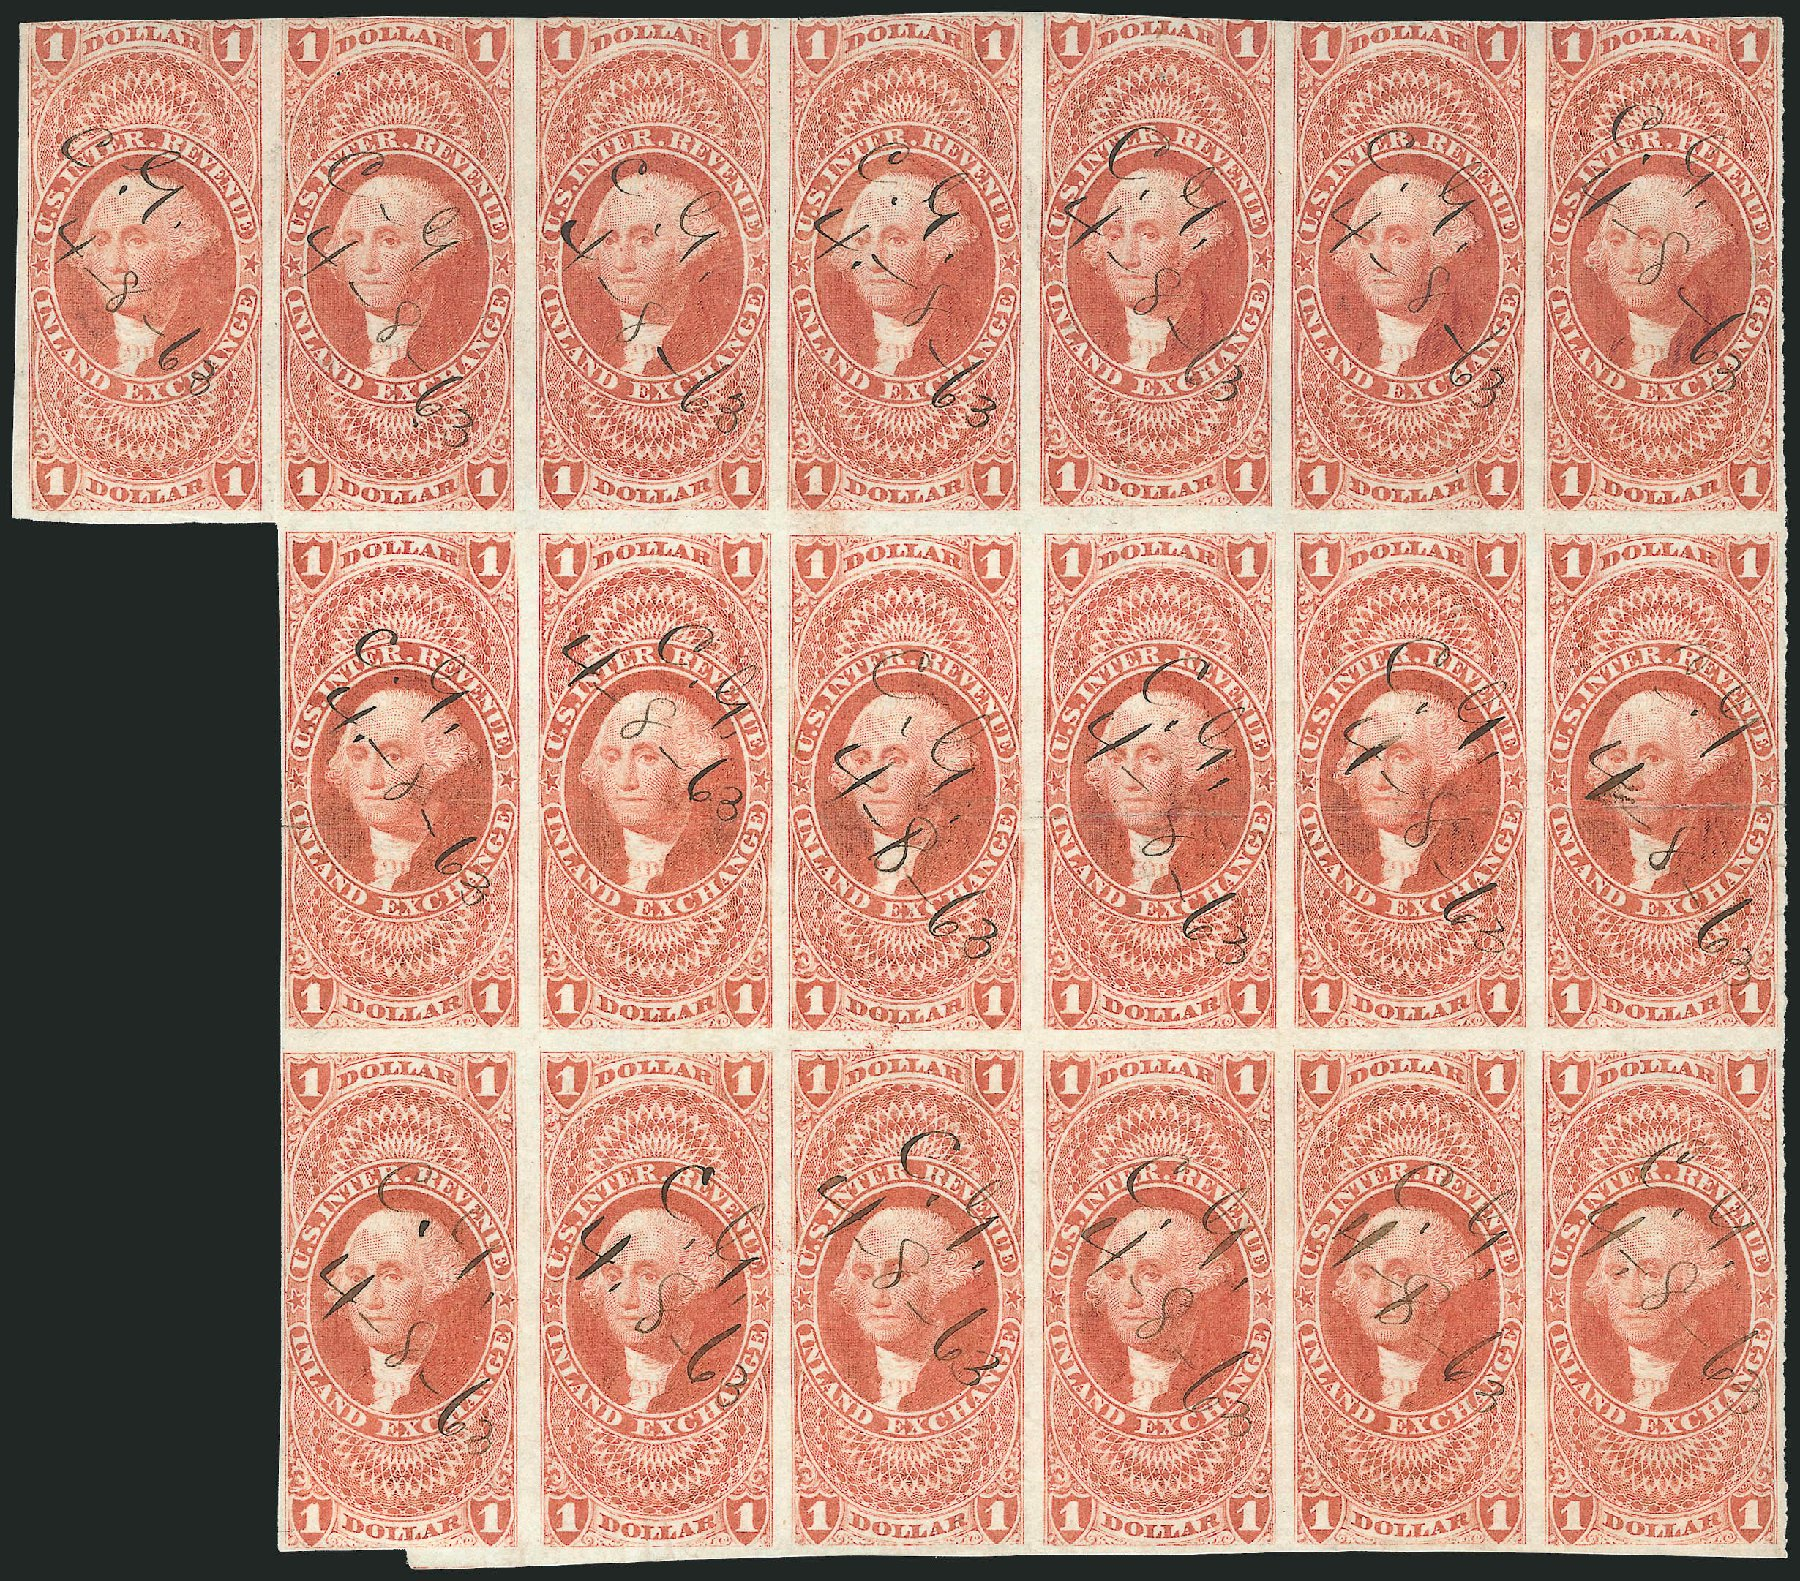 US Stamp Prices Scott R69 - 1862 US$1.00 Revenue Inland Exchange. Robert Siegel Auction Galleries, Dec 2014, Sale 1089, Lot 354